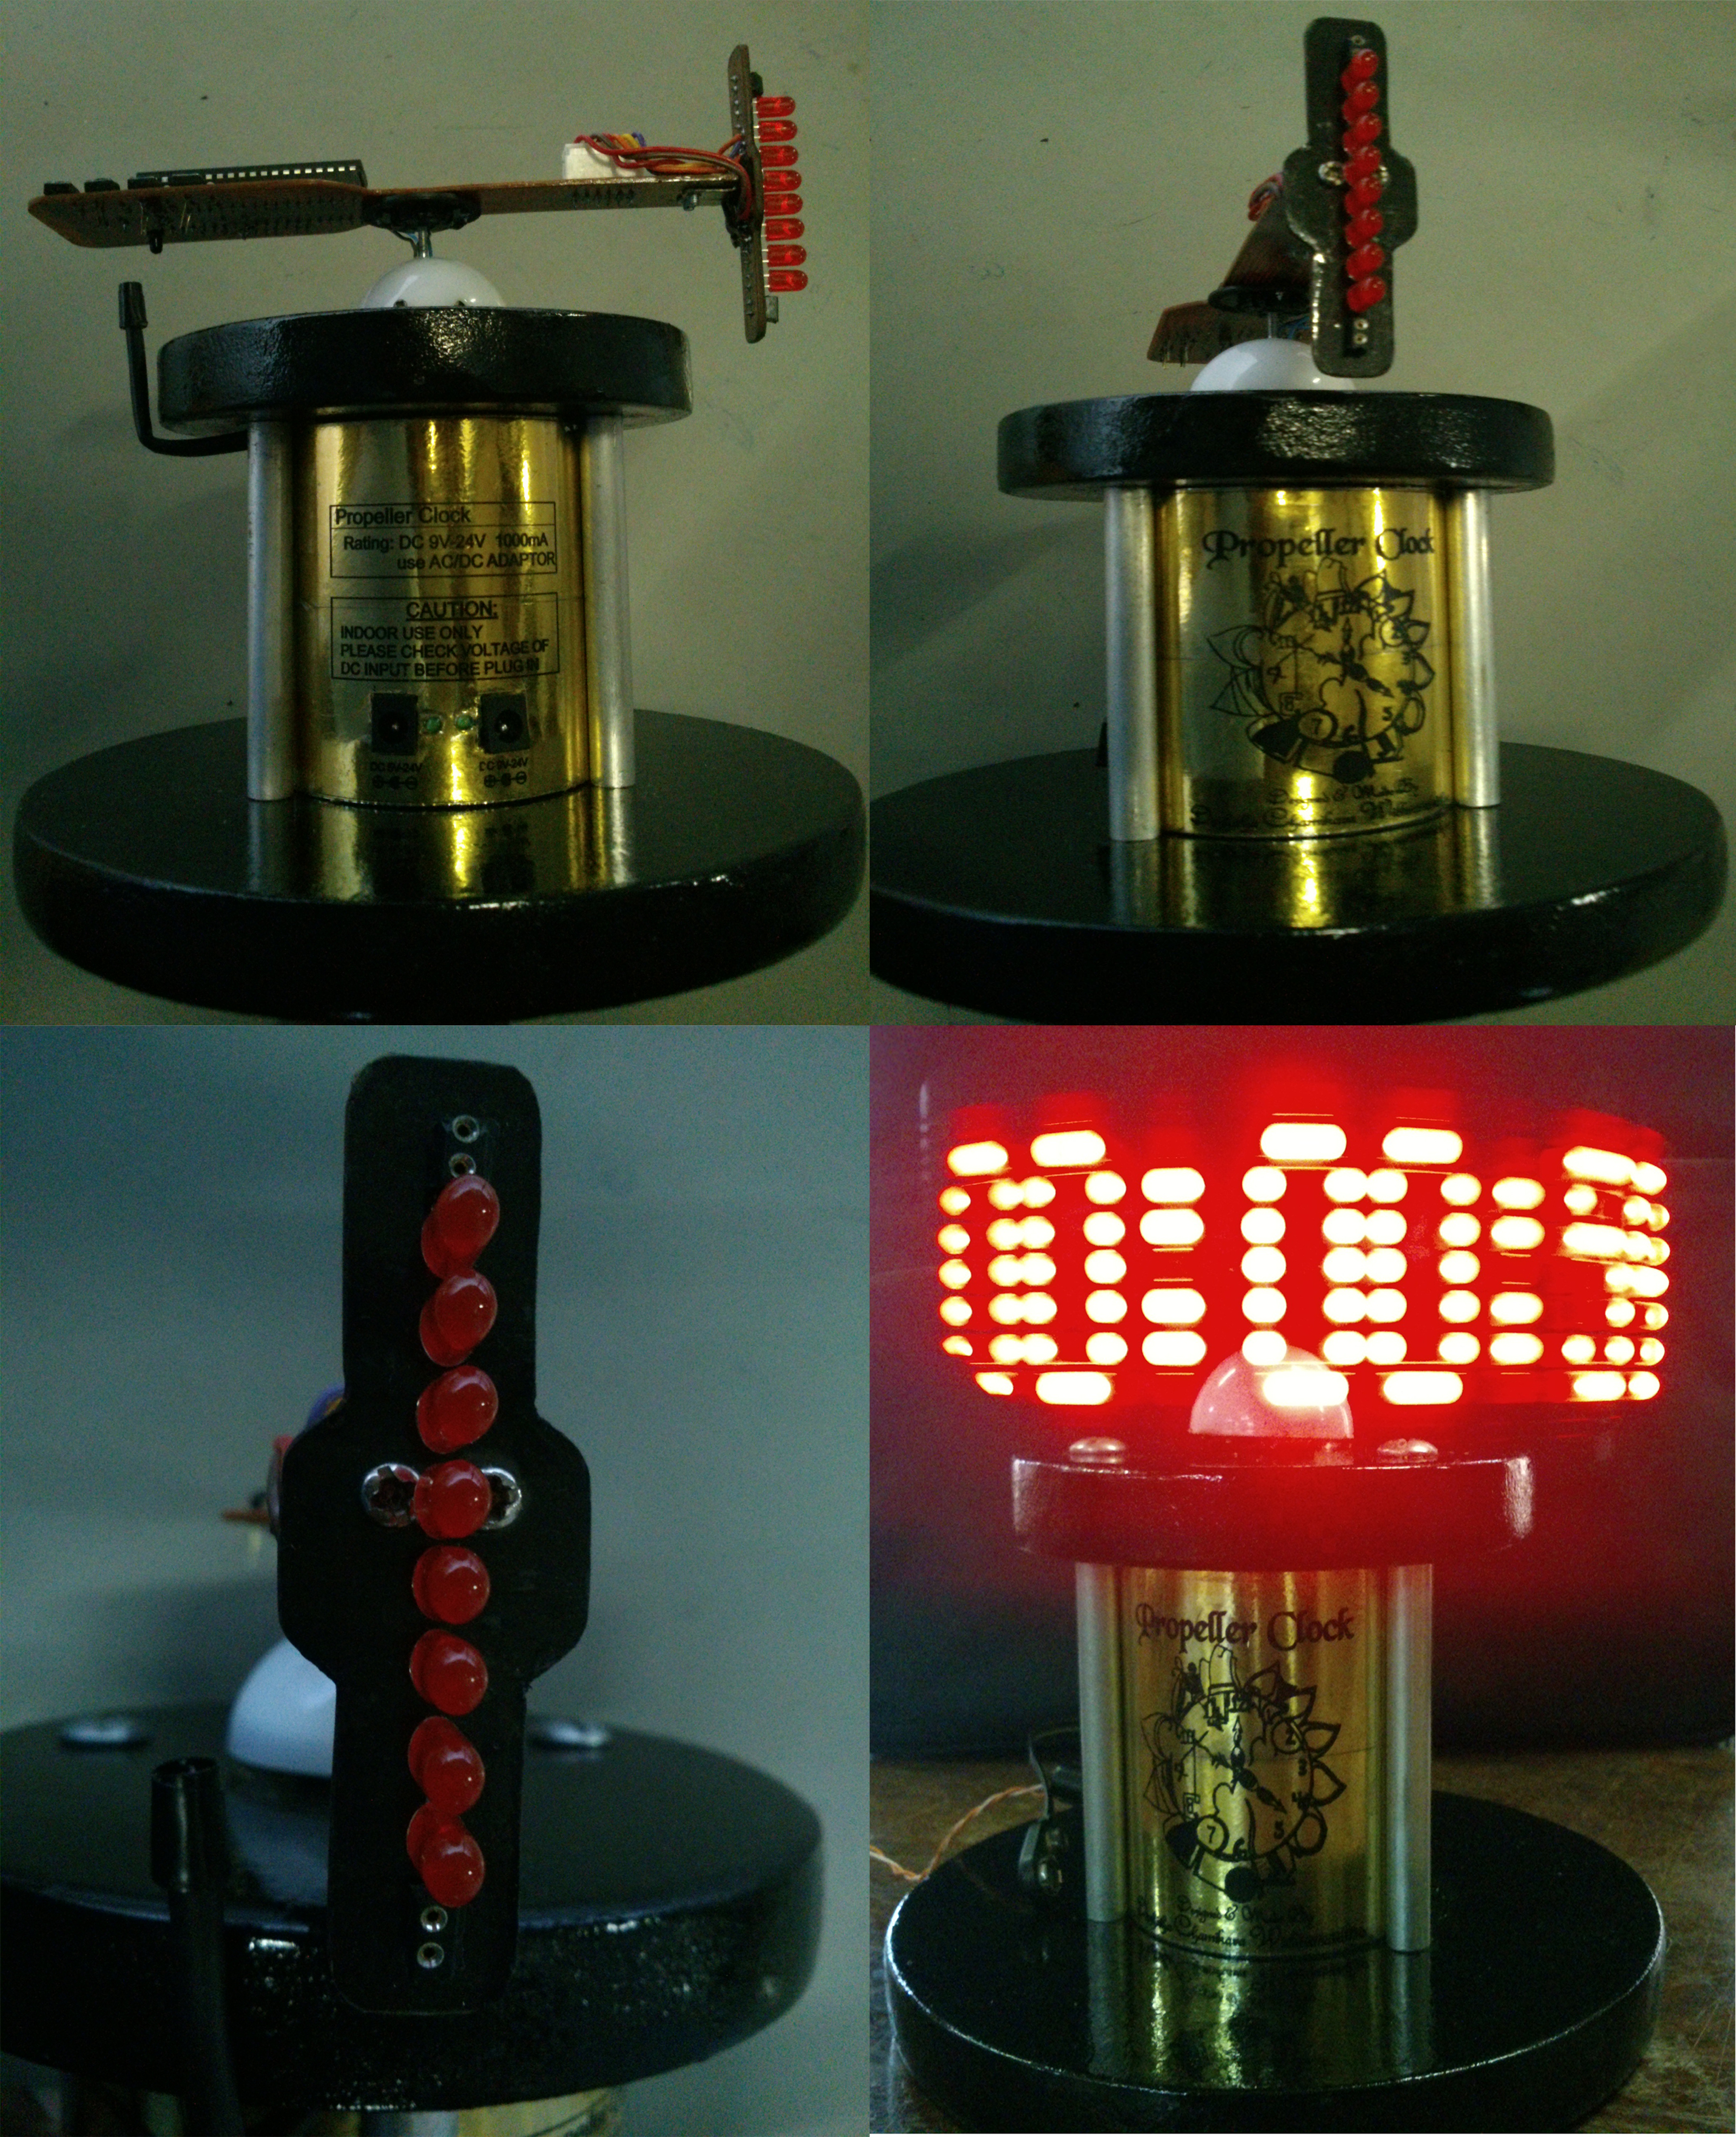 Propeller Clock Embedded System Laboratory Board Build The Circuit Using Schematic On Right Final